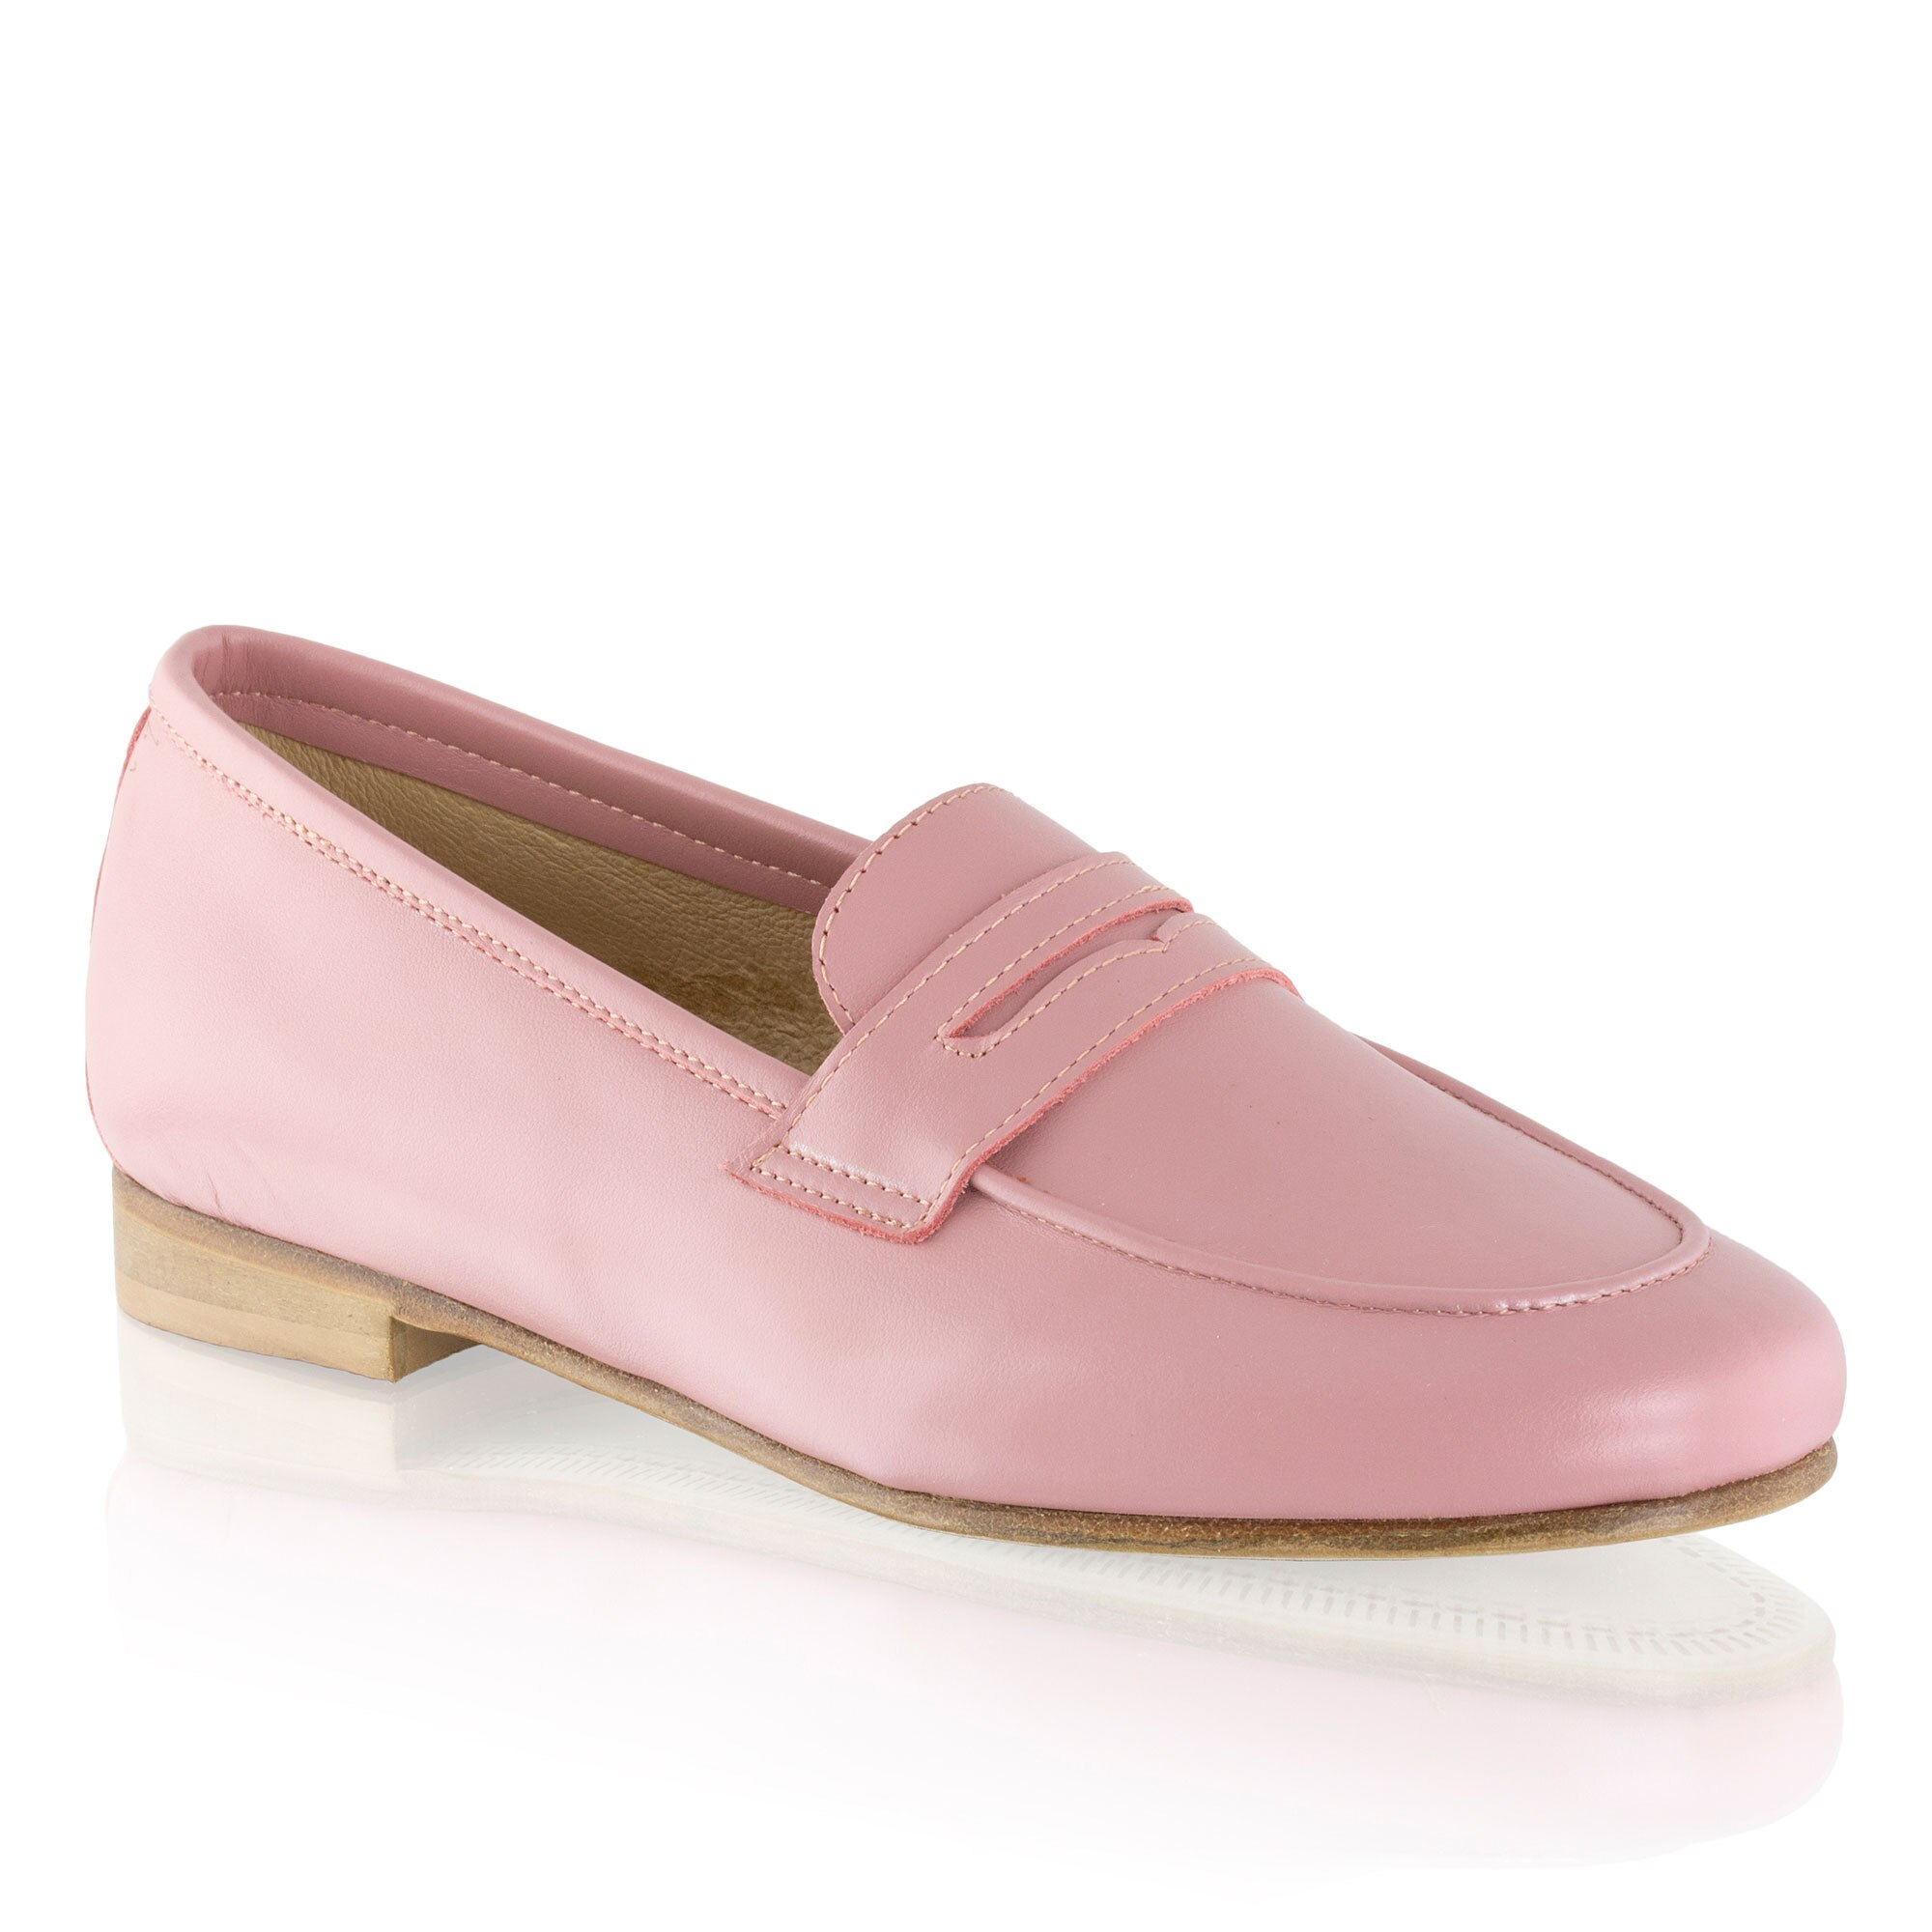 Russell and Bromley PENNYLANE Penny Loafer